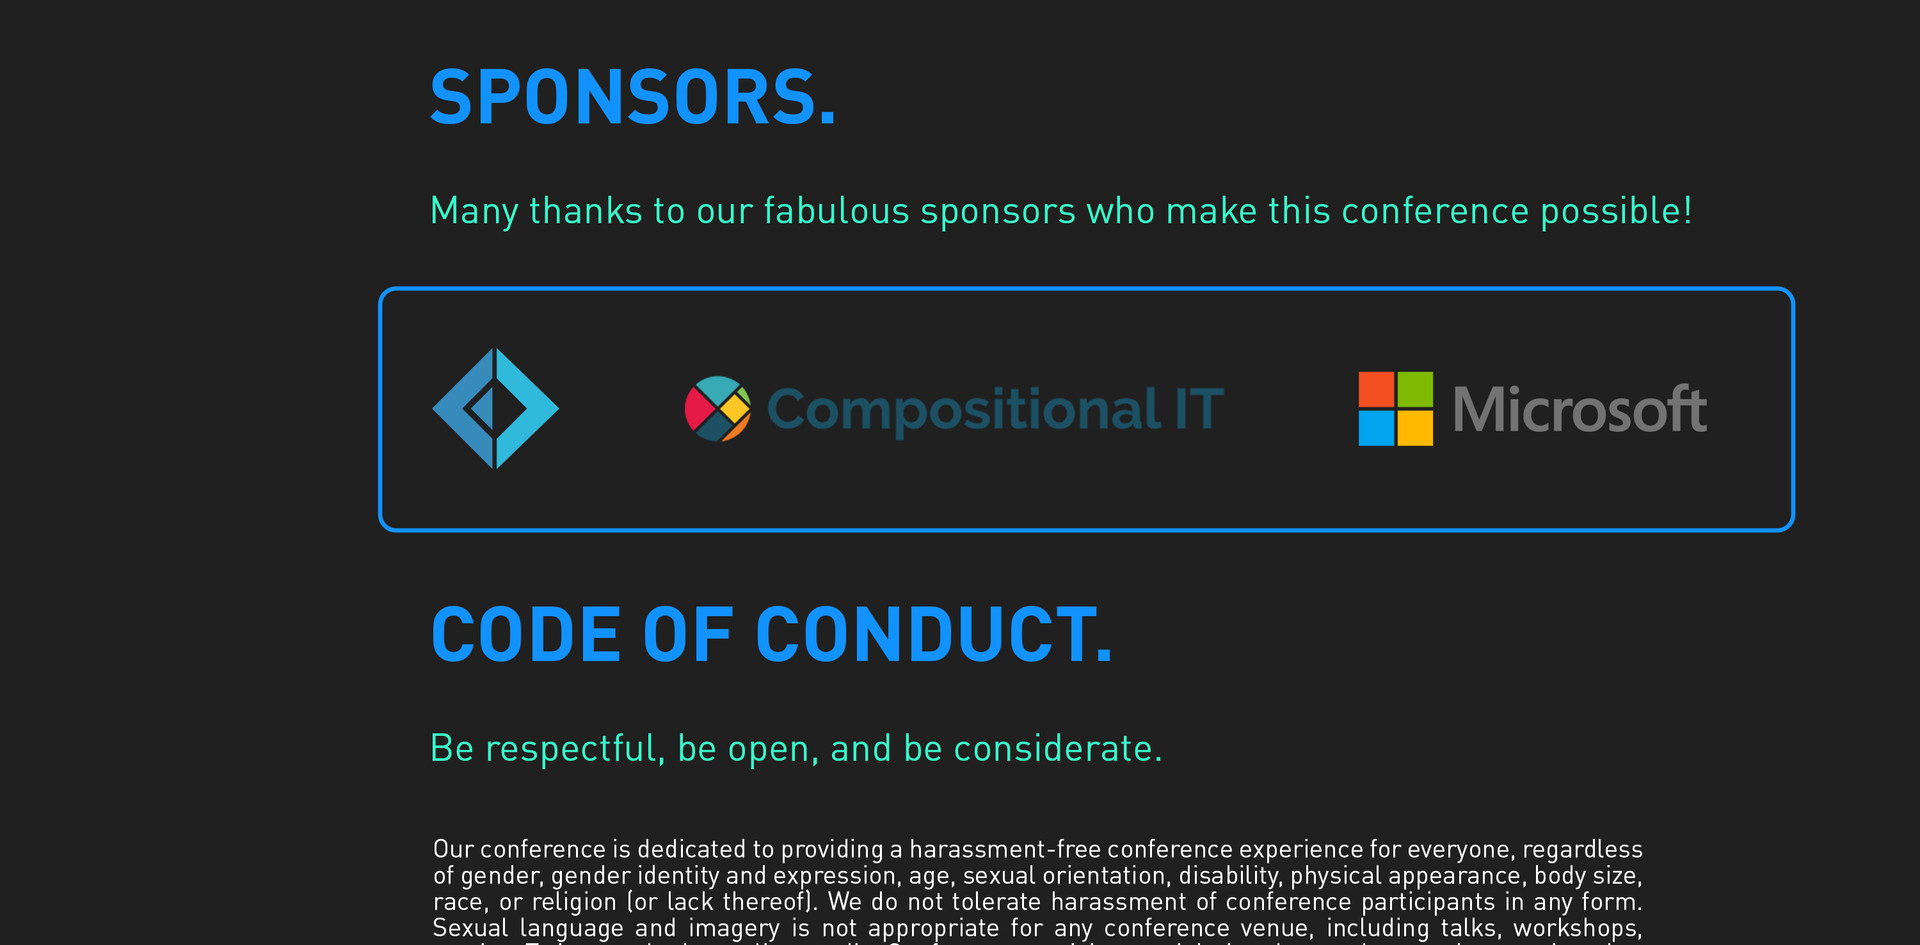 CONF18 sponsors